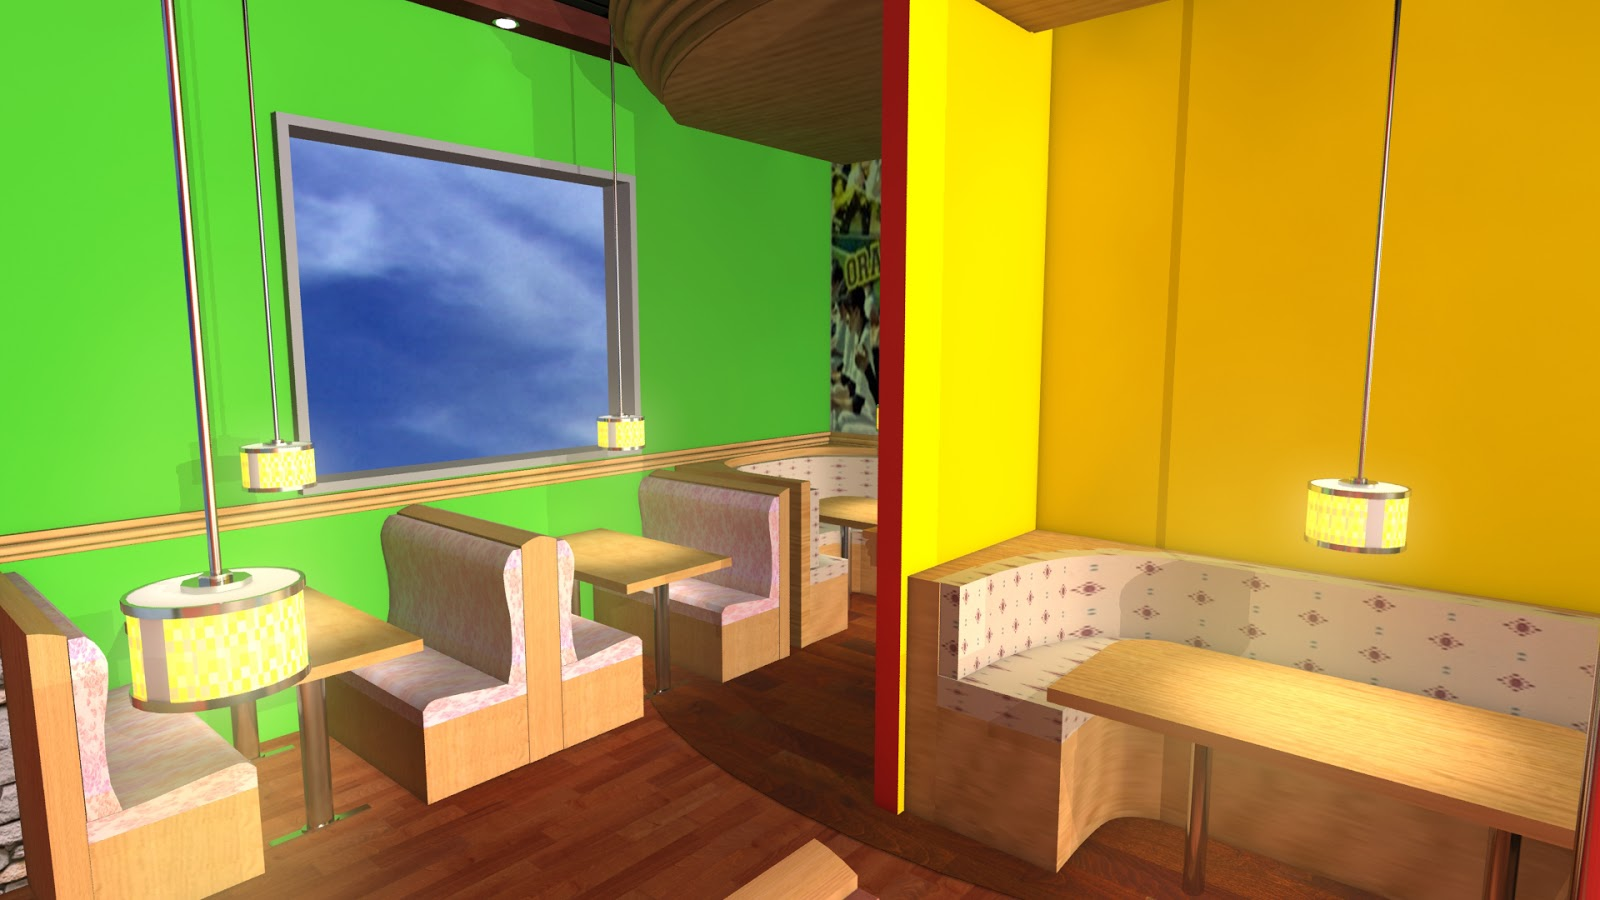 Sajid designs 3d interior design applebees qatar for Interior design qatar